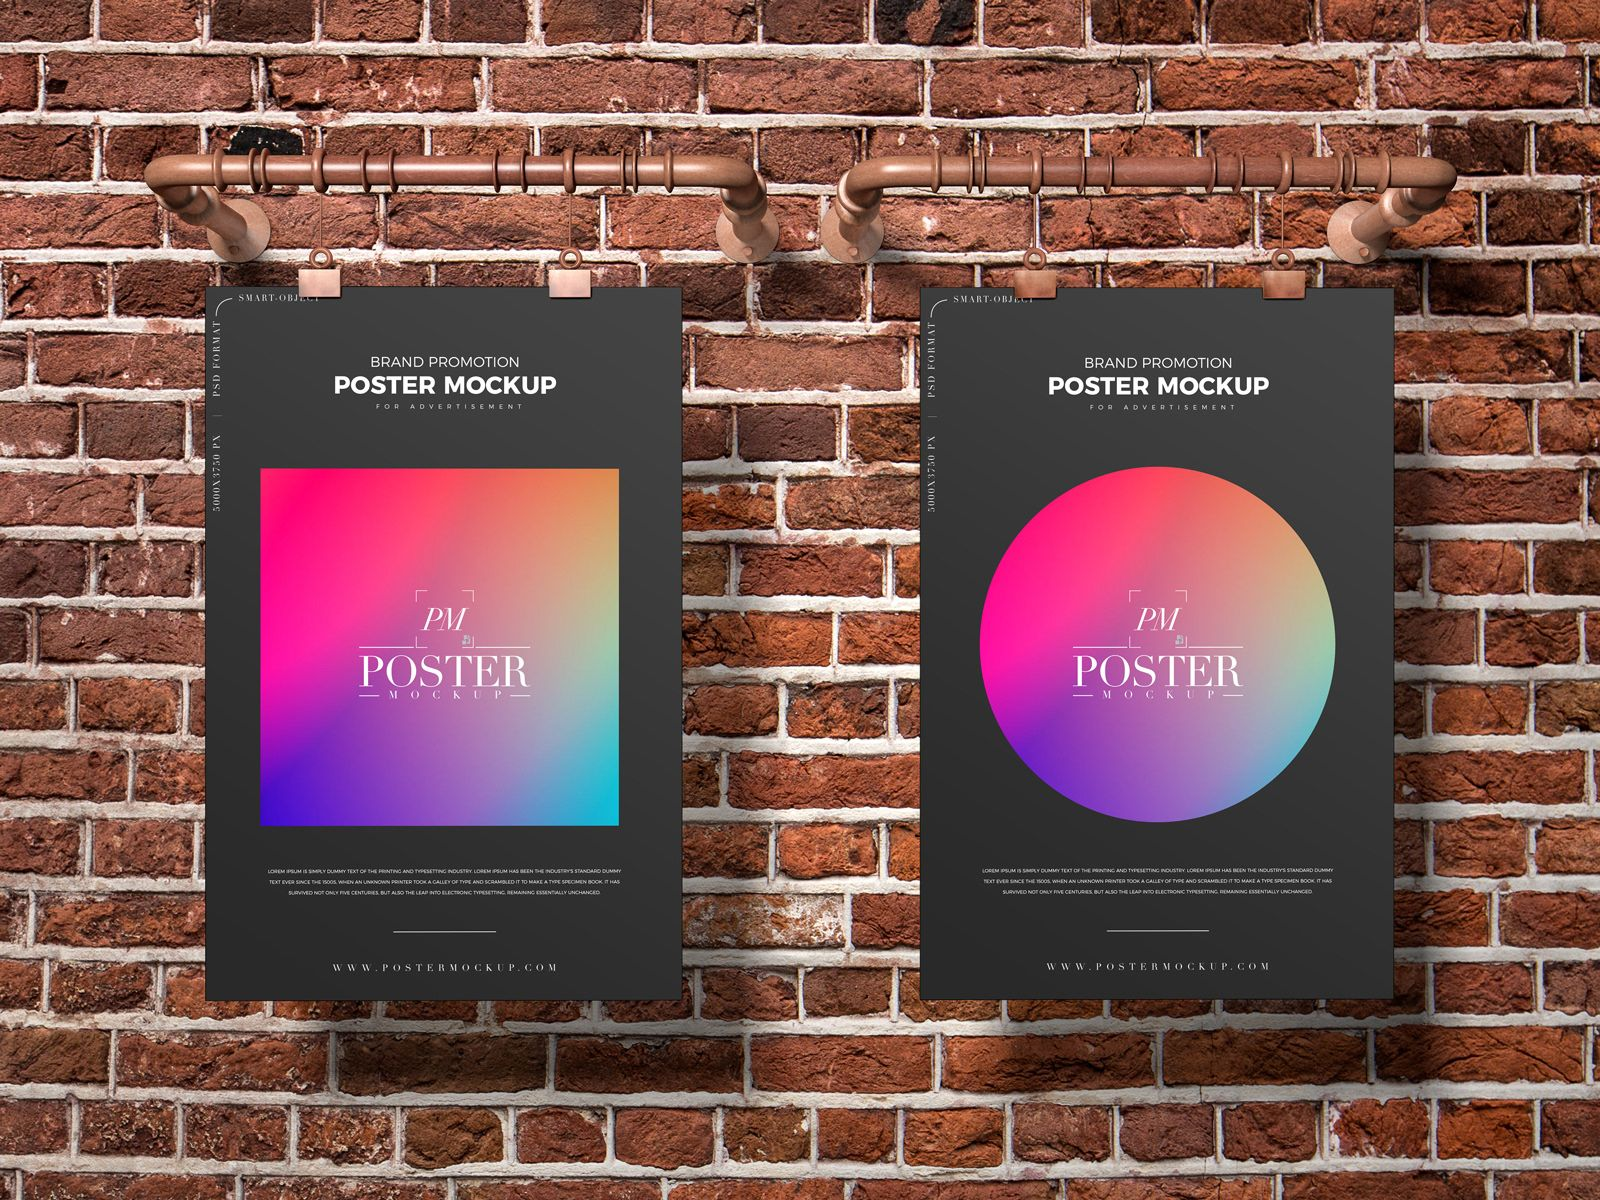 Free Hanging 2 Posters Mockup Poster Mockup Hanging Posters Brand Promotion